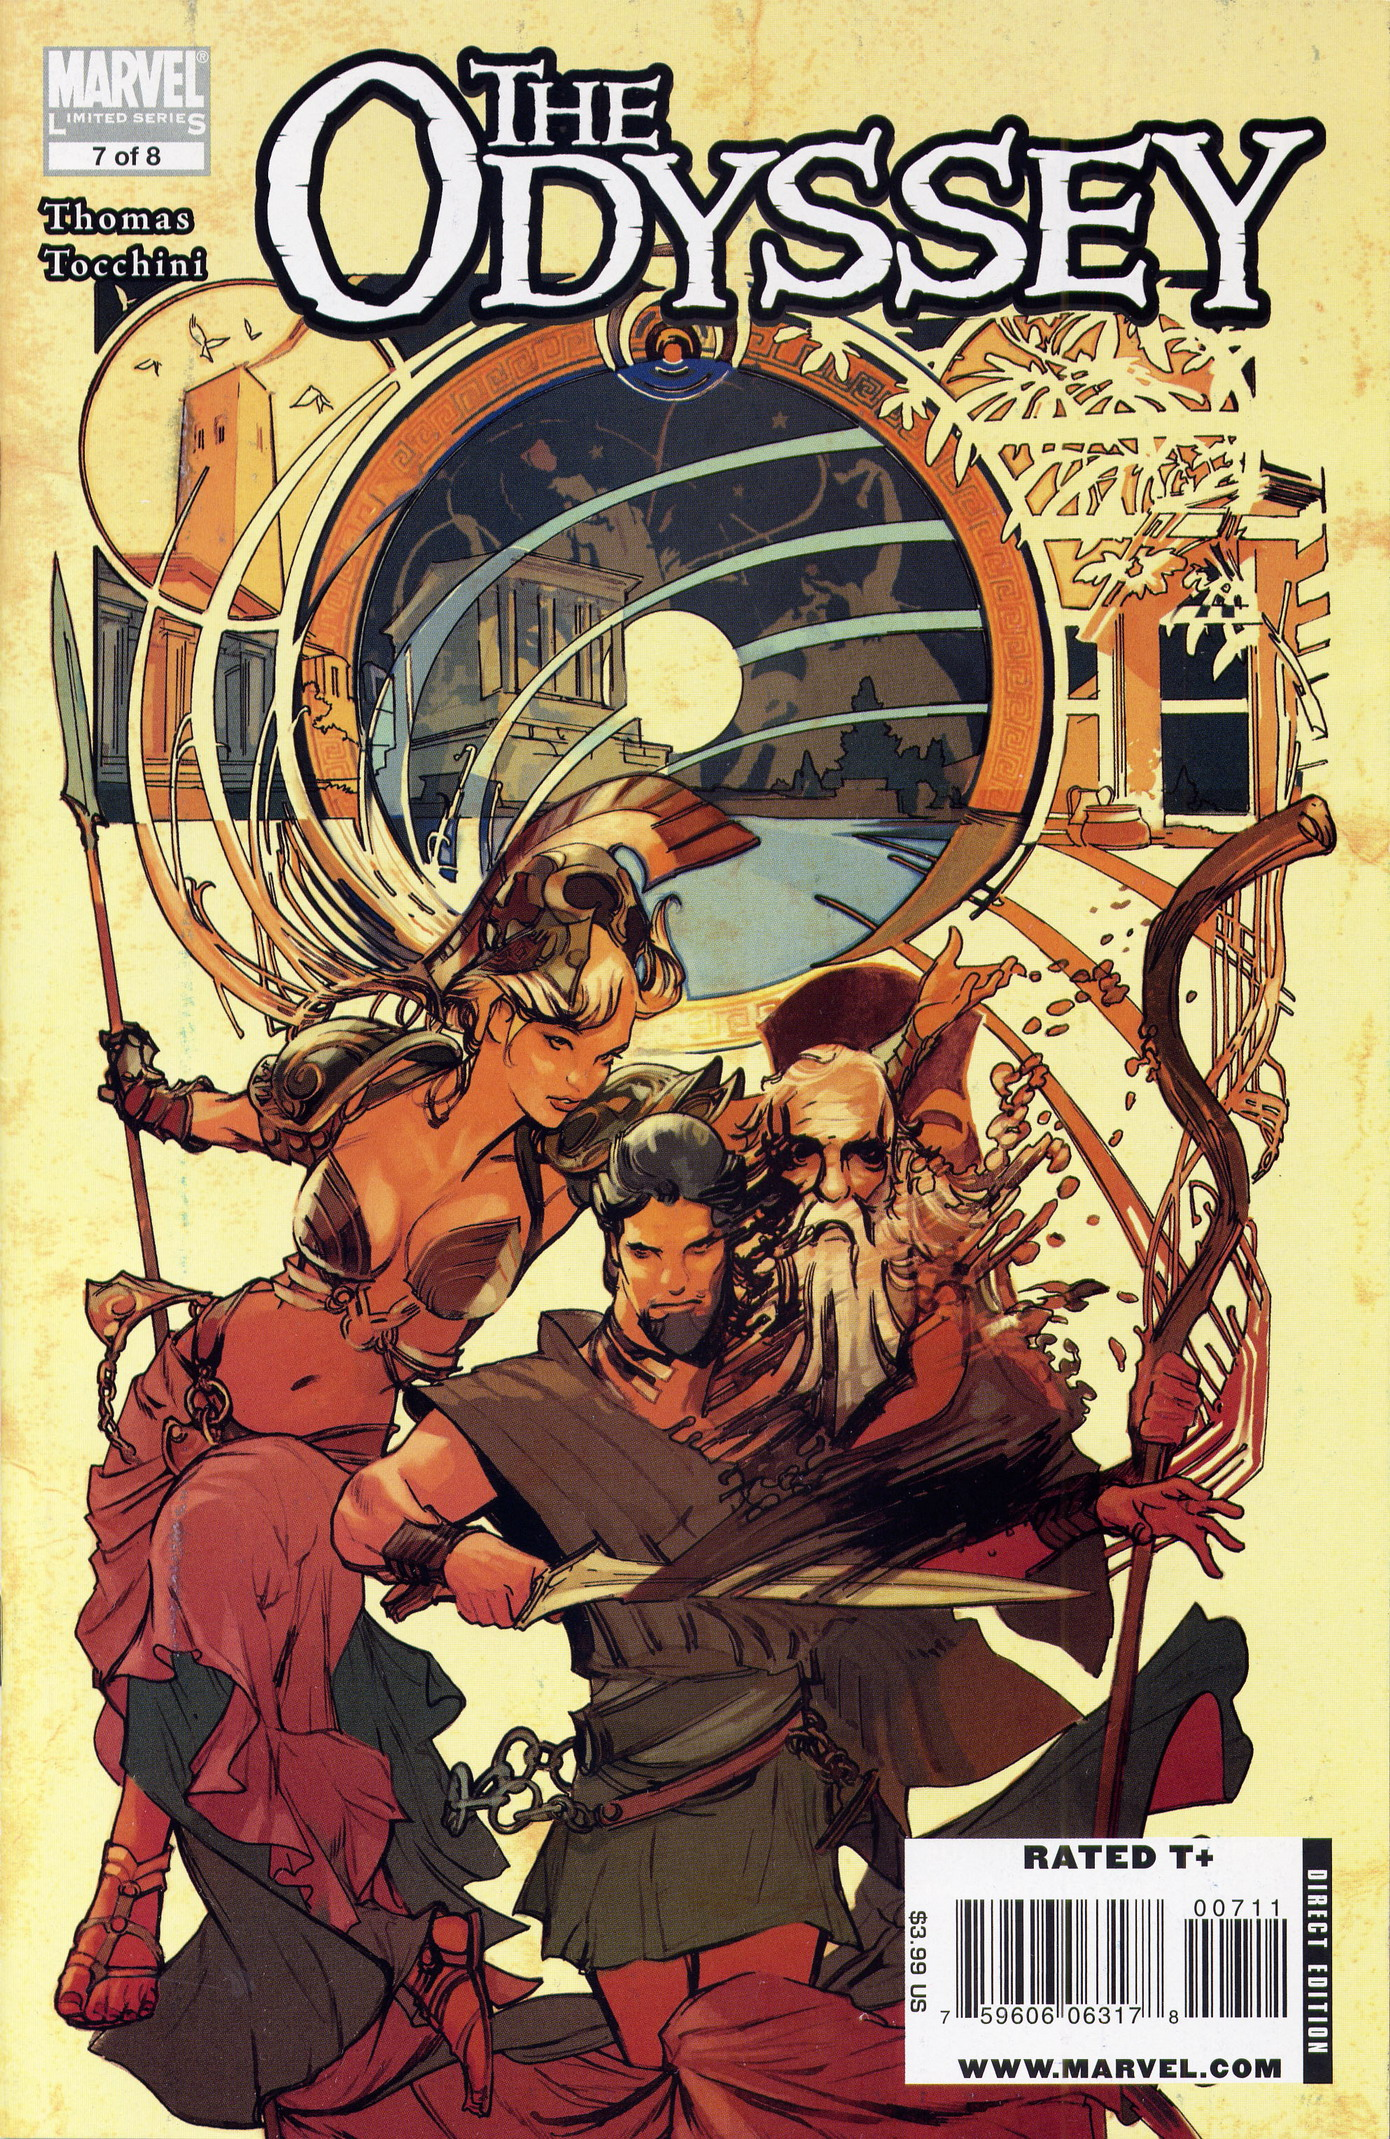 Marvel Illustrated: The Odyssey Vol 1 7